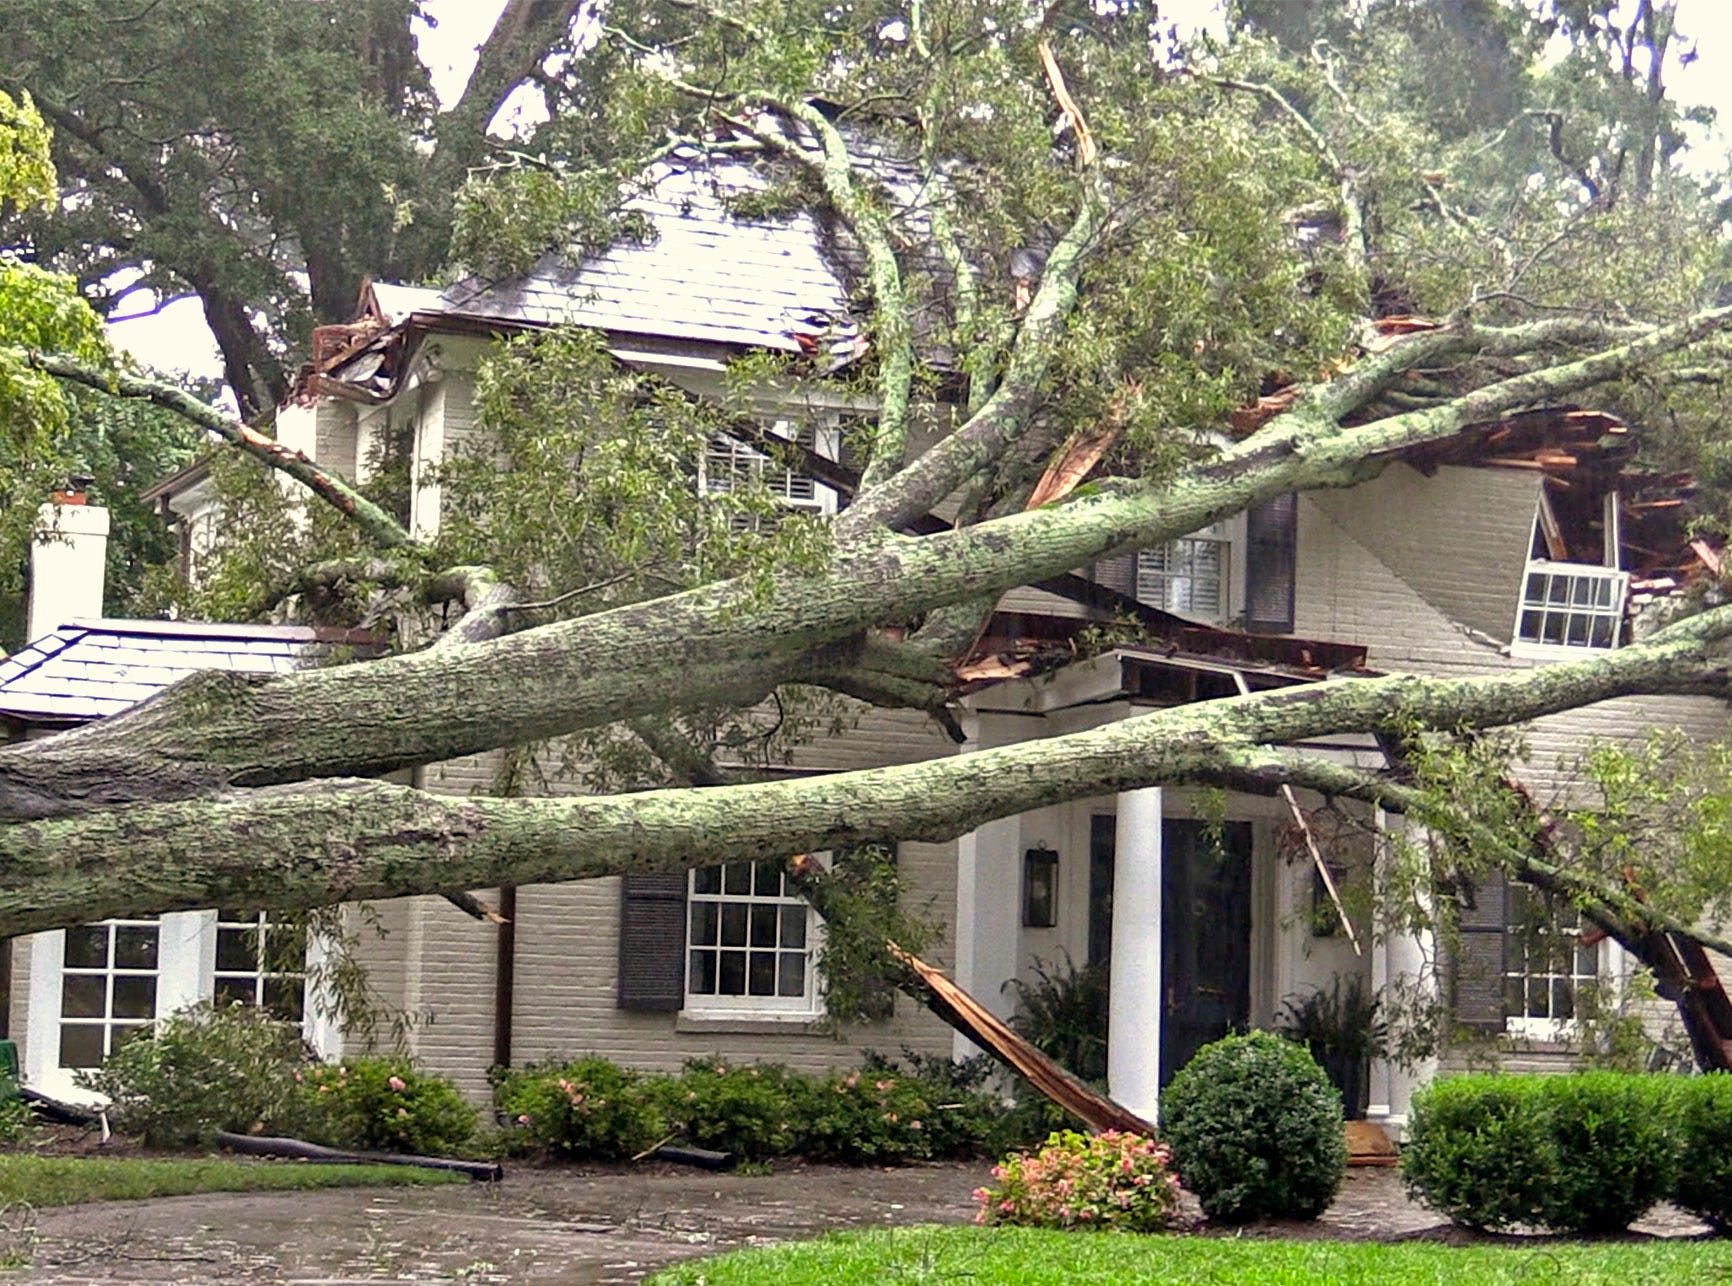 A tree rests atop a home on Queens Road West in Charlotte, N.C. on Sunday, Sept. 16, 2018. Tropical Storm Florence brought heavy rain and winds to the Charlotte area over the weekend, with trees falling throughout the city.